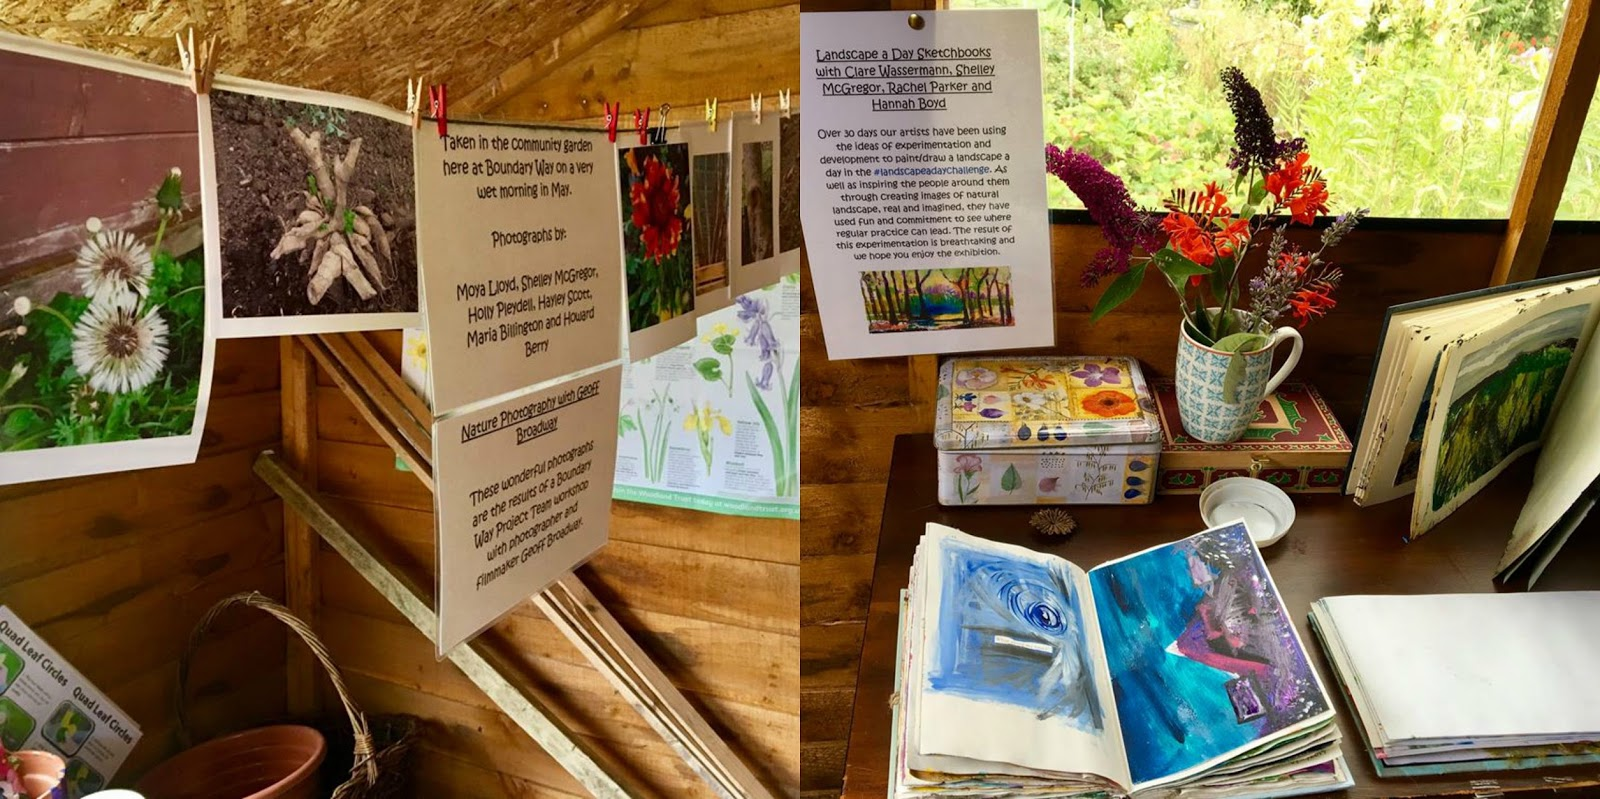 Photographs by Team and Sketchbooks by Visiting Artists